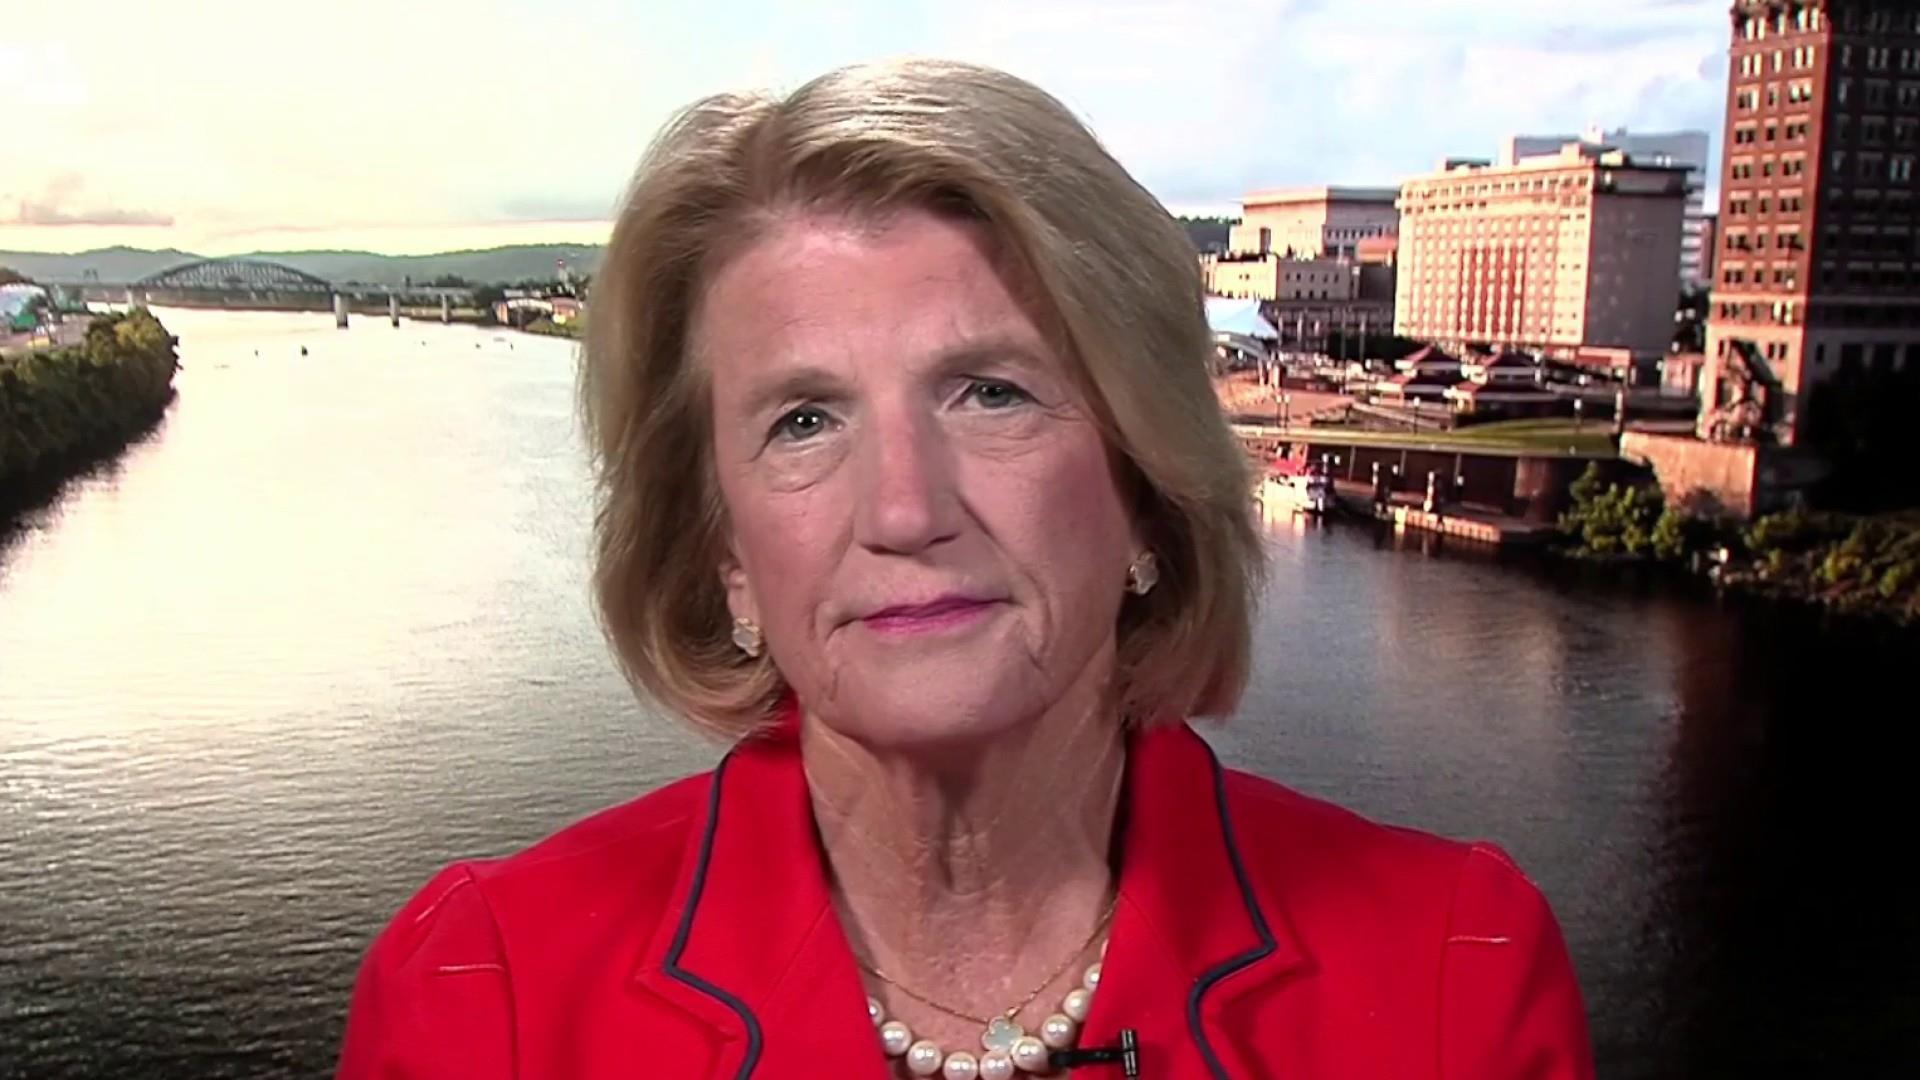 GOP Sen. Shelley Moore Capito: Children's drawings out of detention centers are 'disturbing'